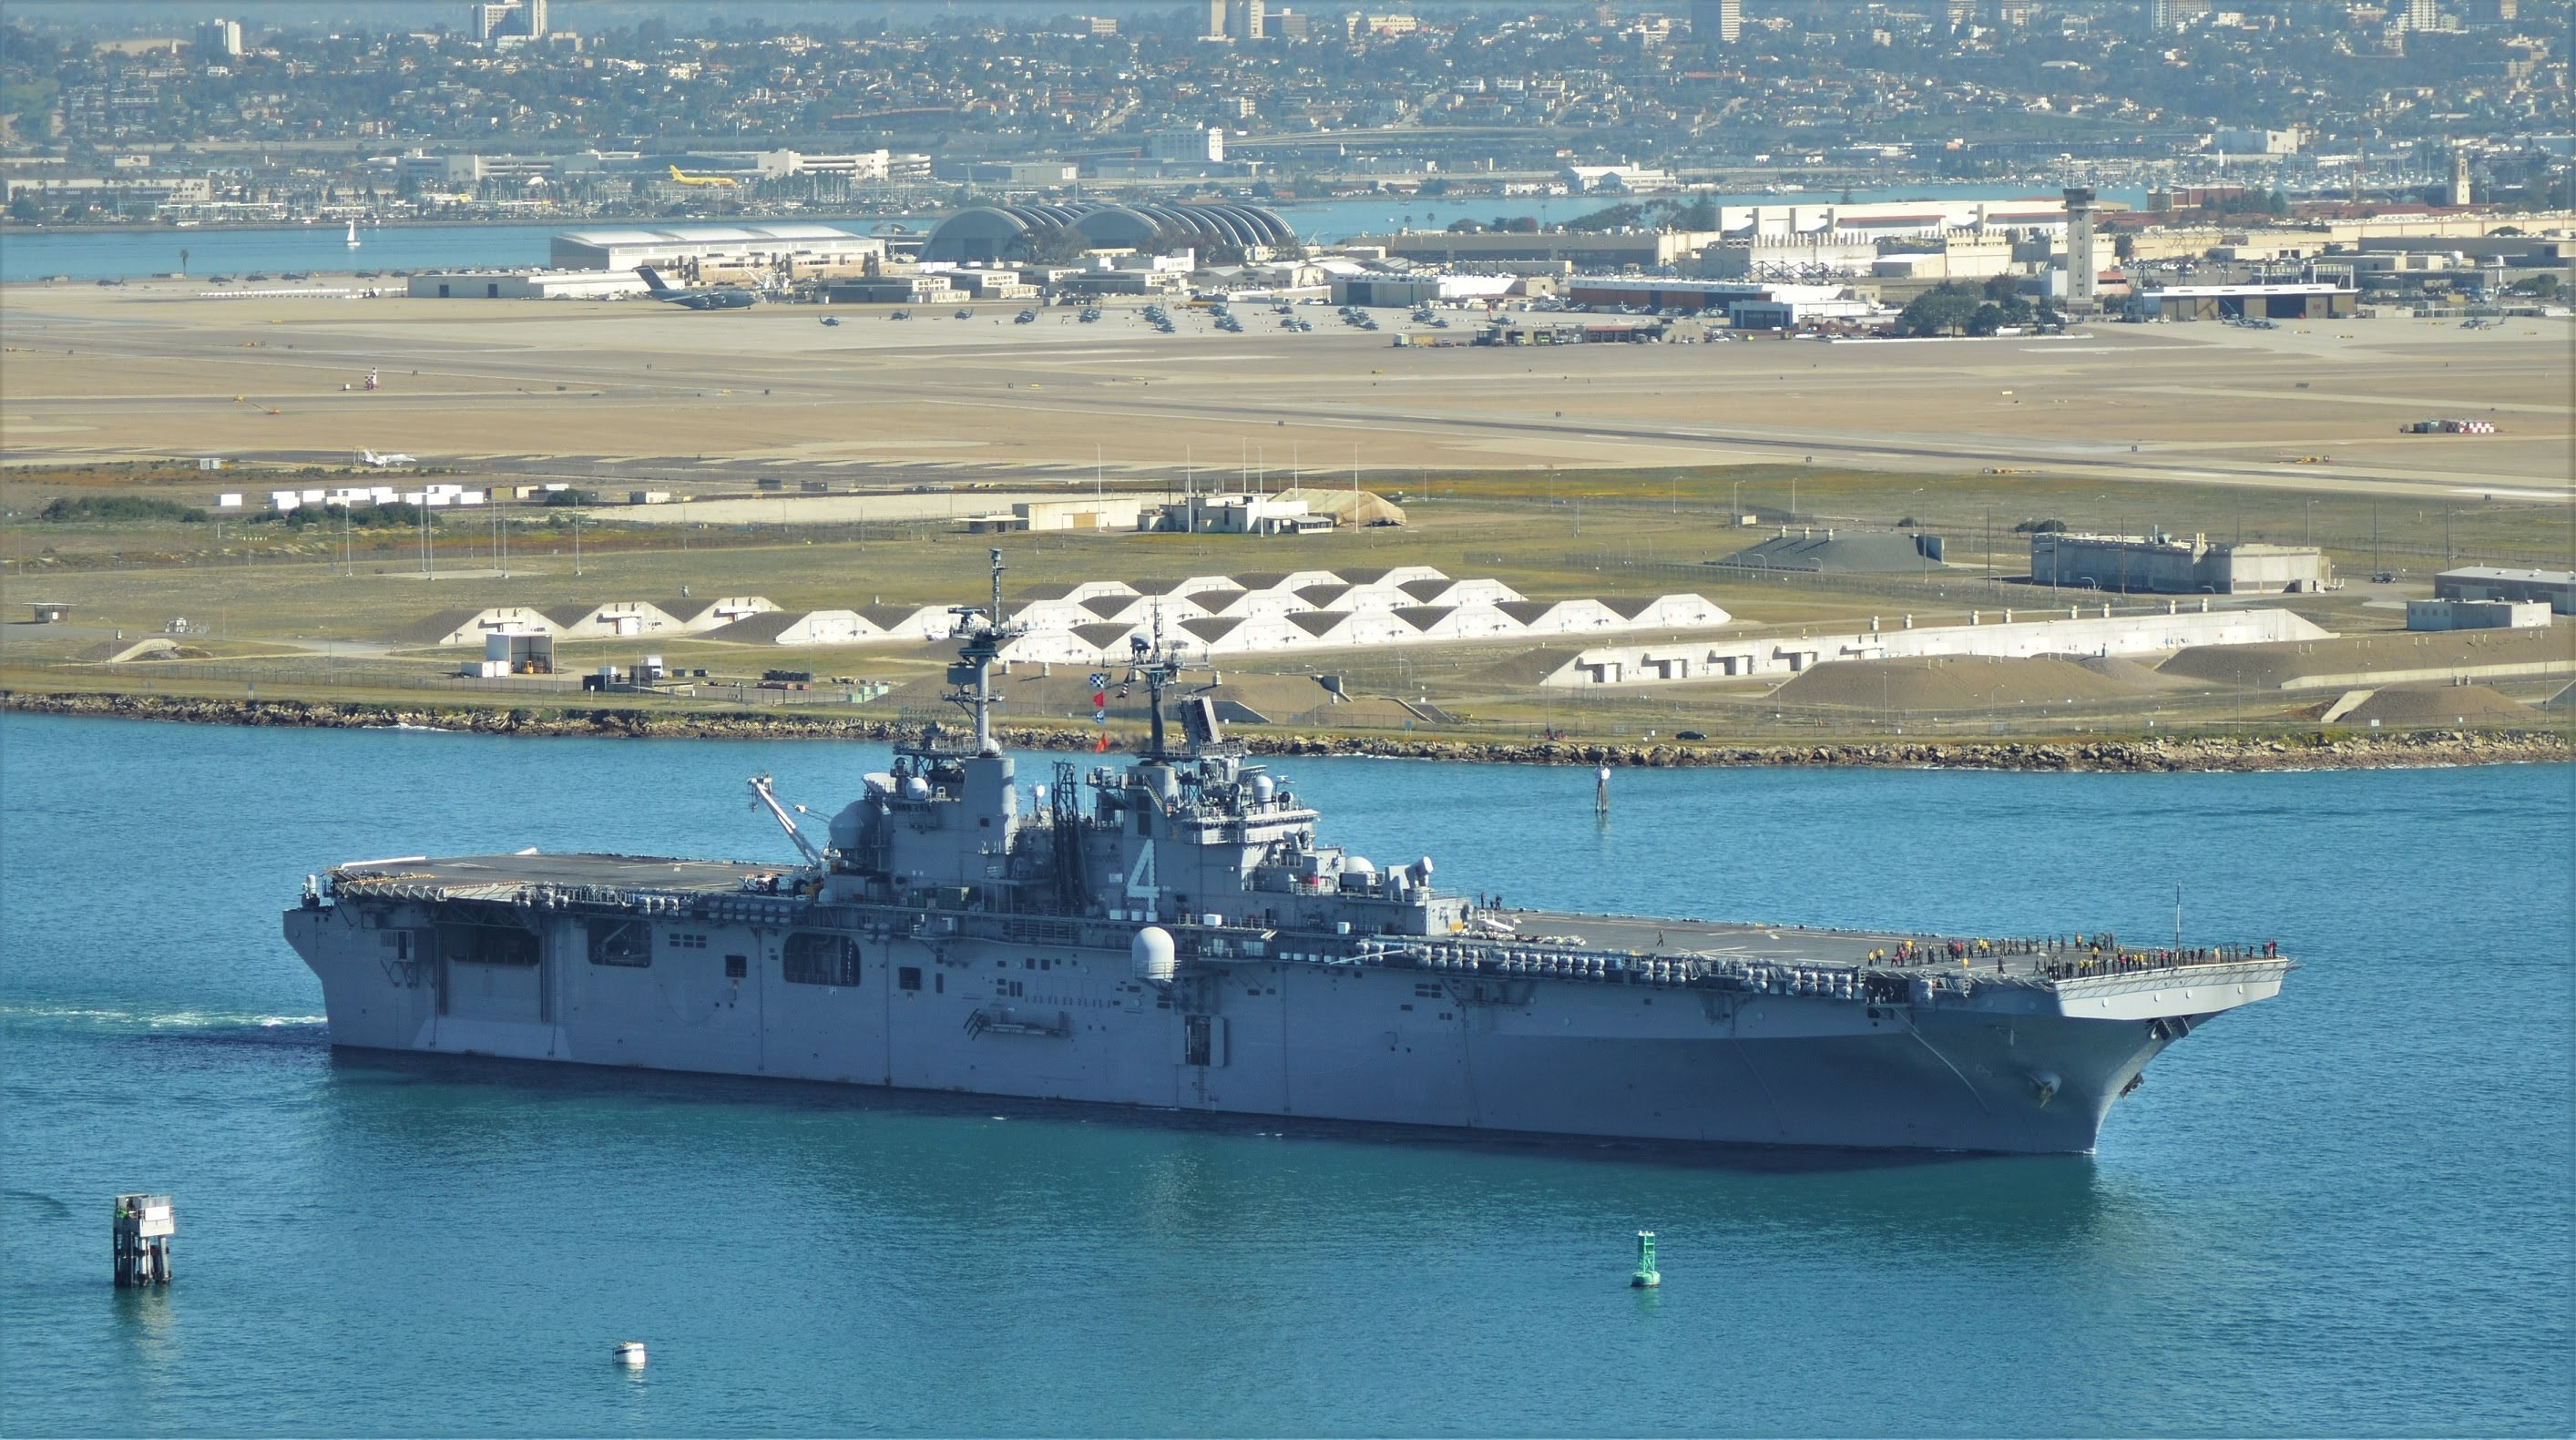 USS Boxer Amphibious Ready Group with the 13th Marine E. Unit departs San Diego. (02/12/2016 | Photo courtesy YouTube.com)